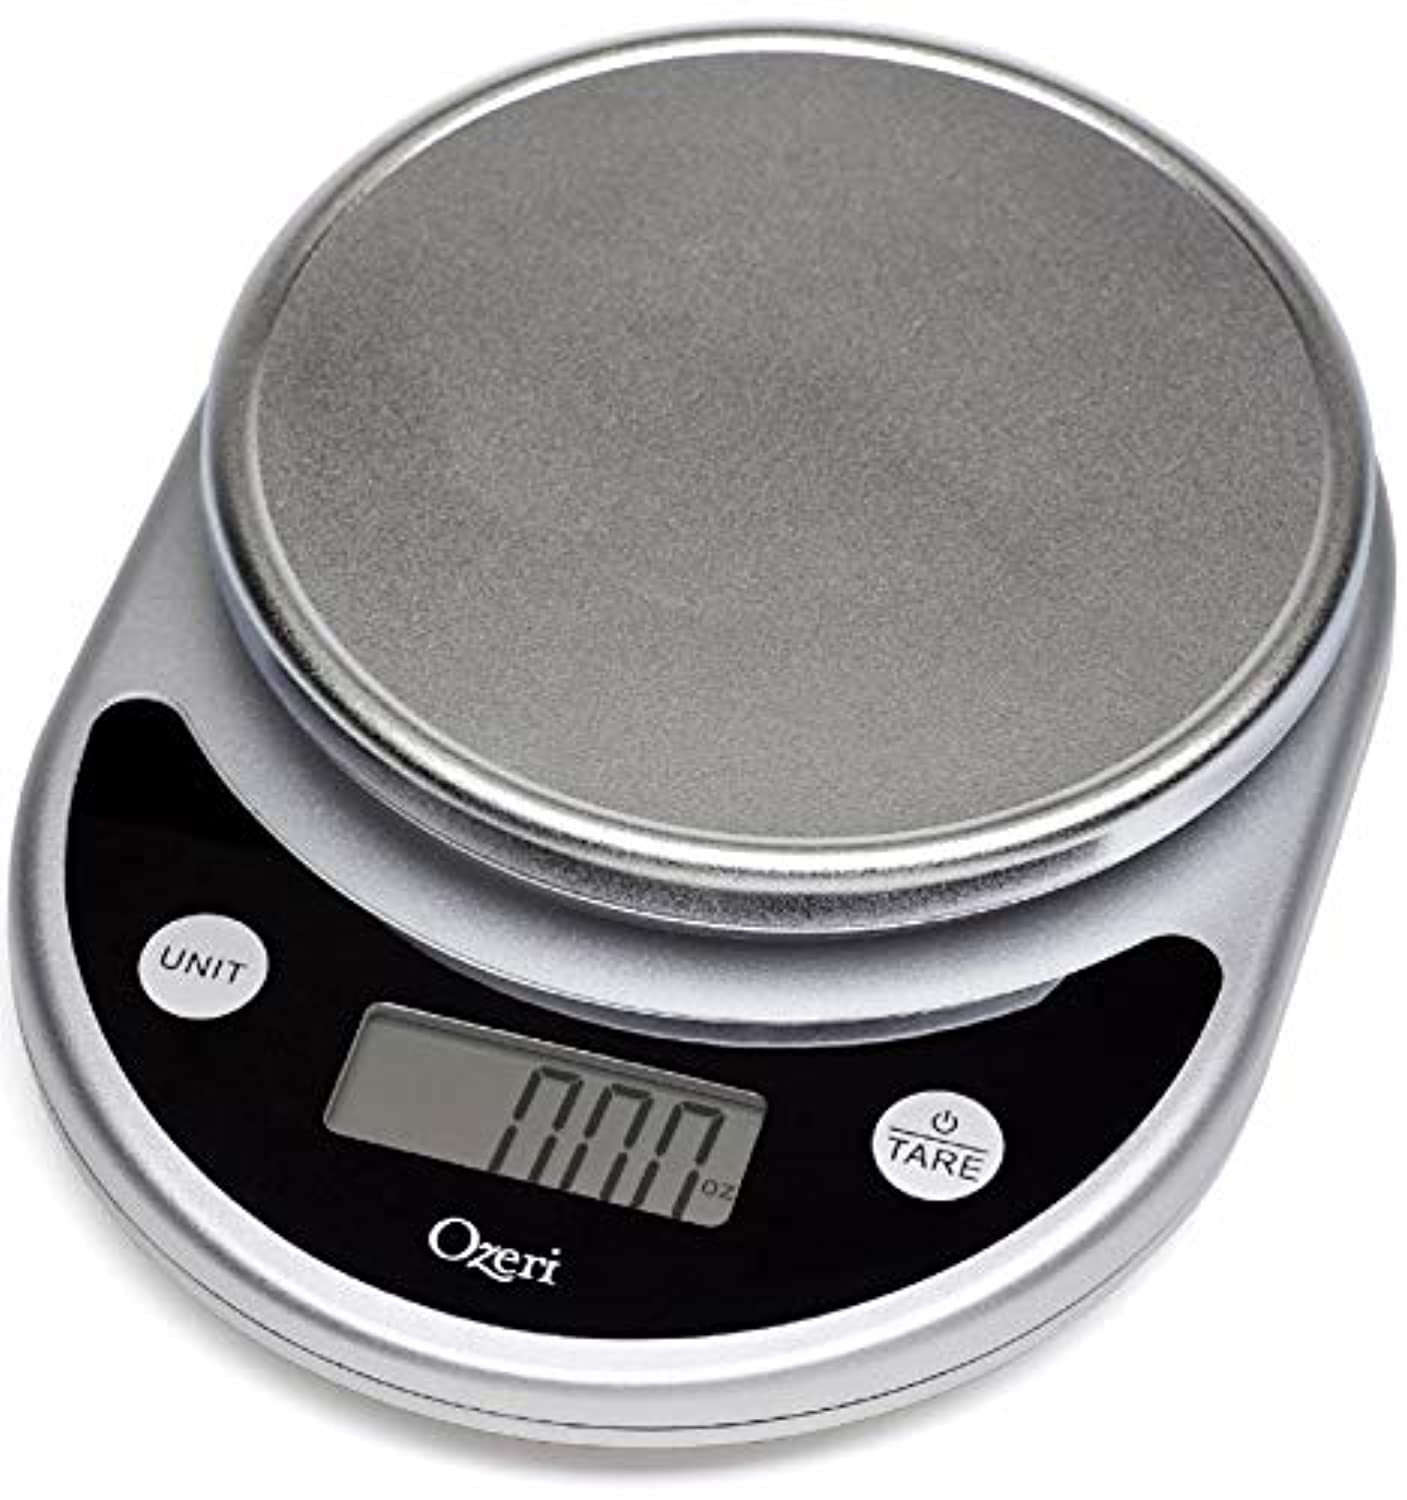 Classier: Buy Ozeri Ozeri ZK14-S Pronto Digital Multifunction Kitchen and Food Scale, Black